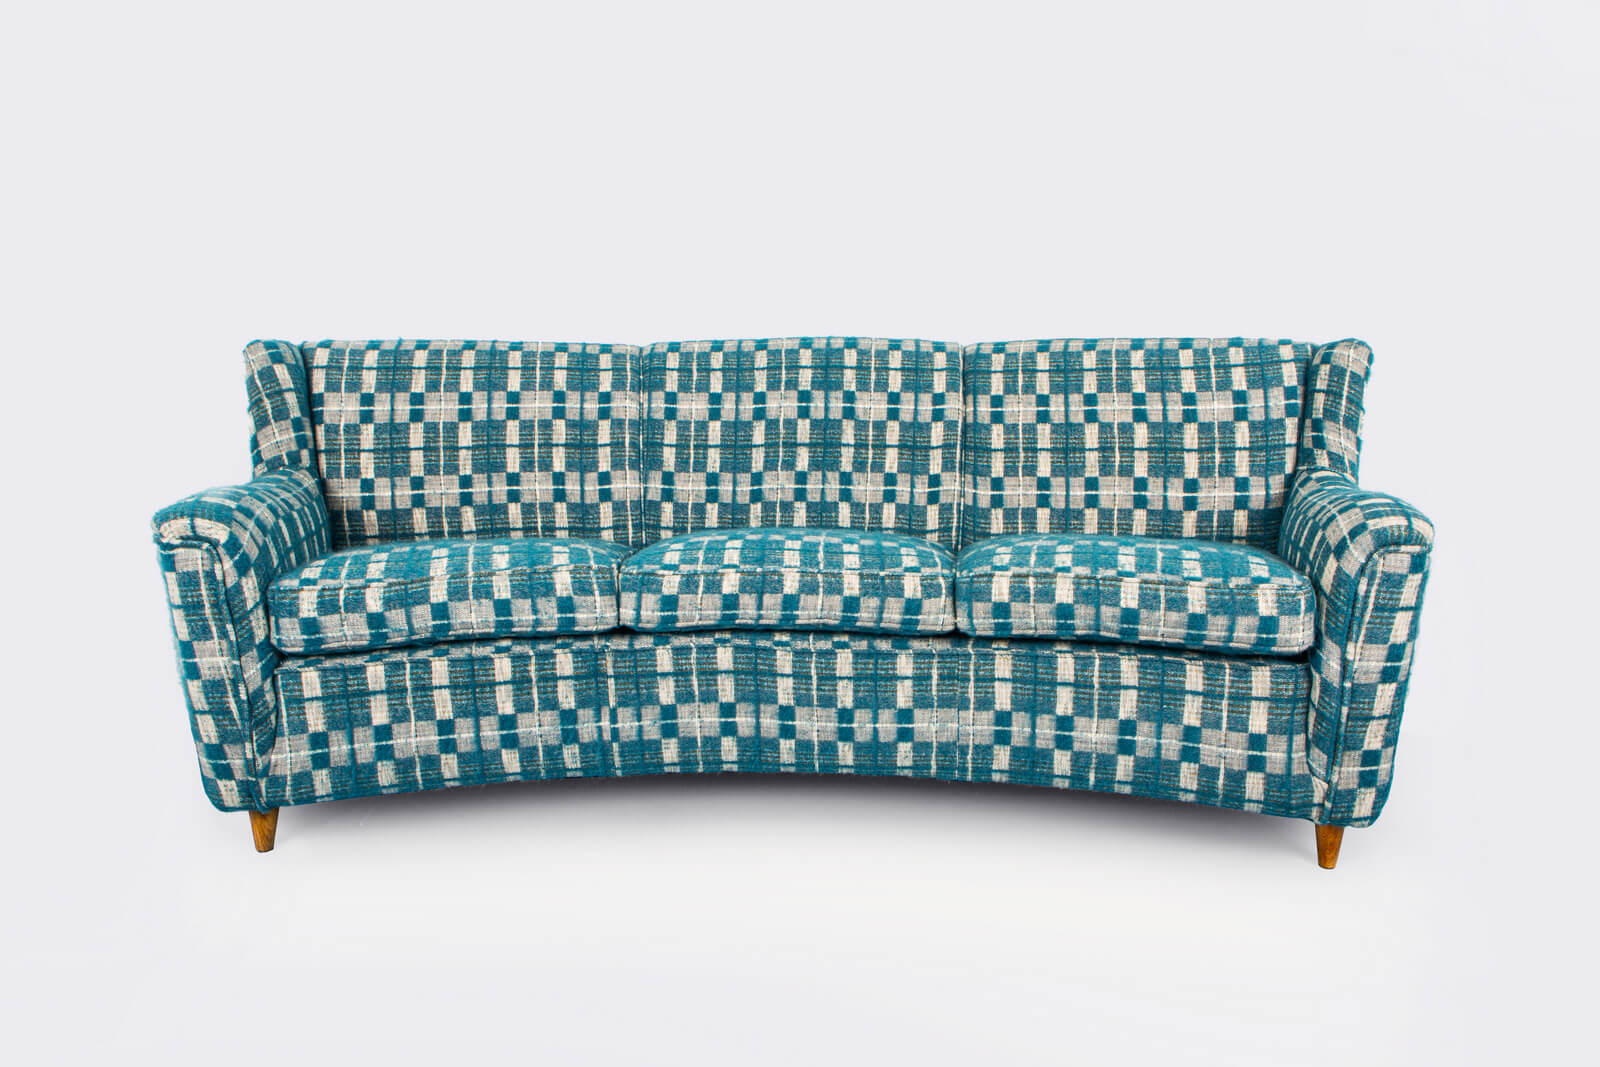 Sofa by Gio Ponti for sale